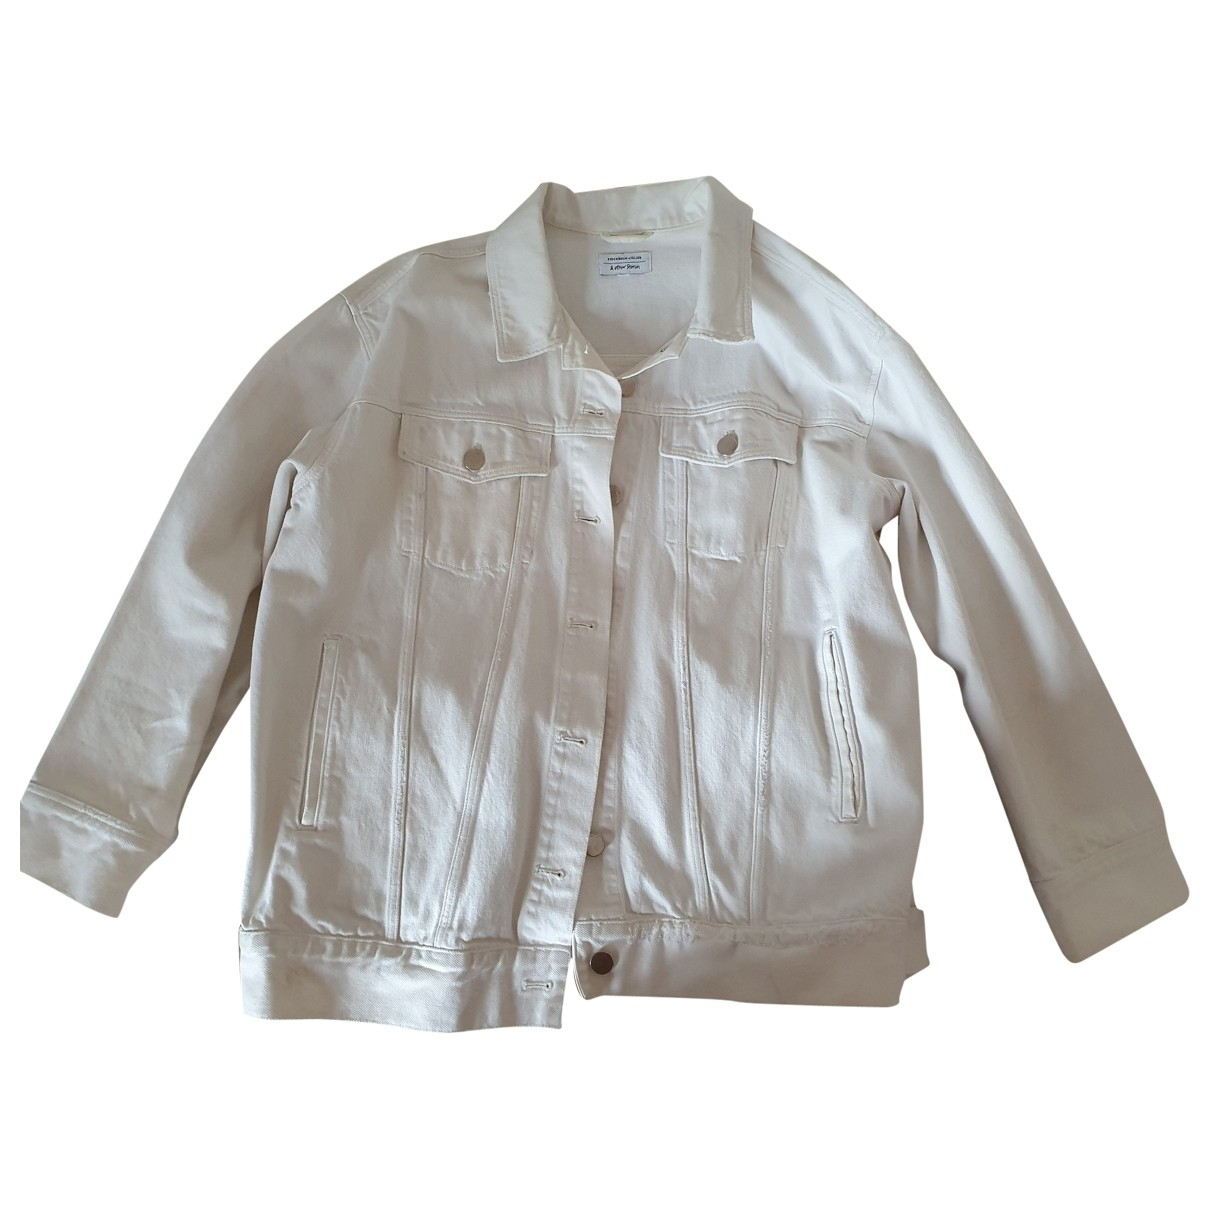 & Stories \N White Cotton jacket for Women L International